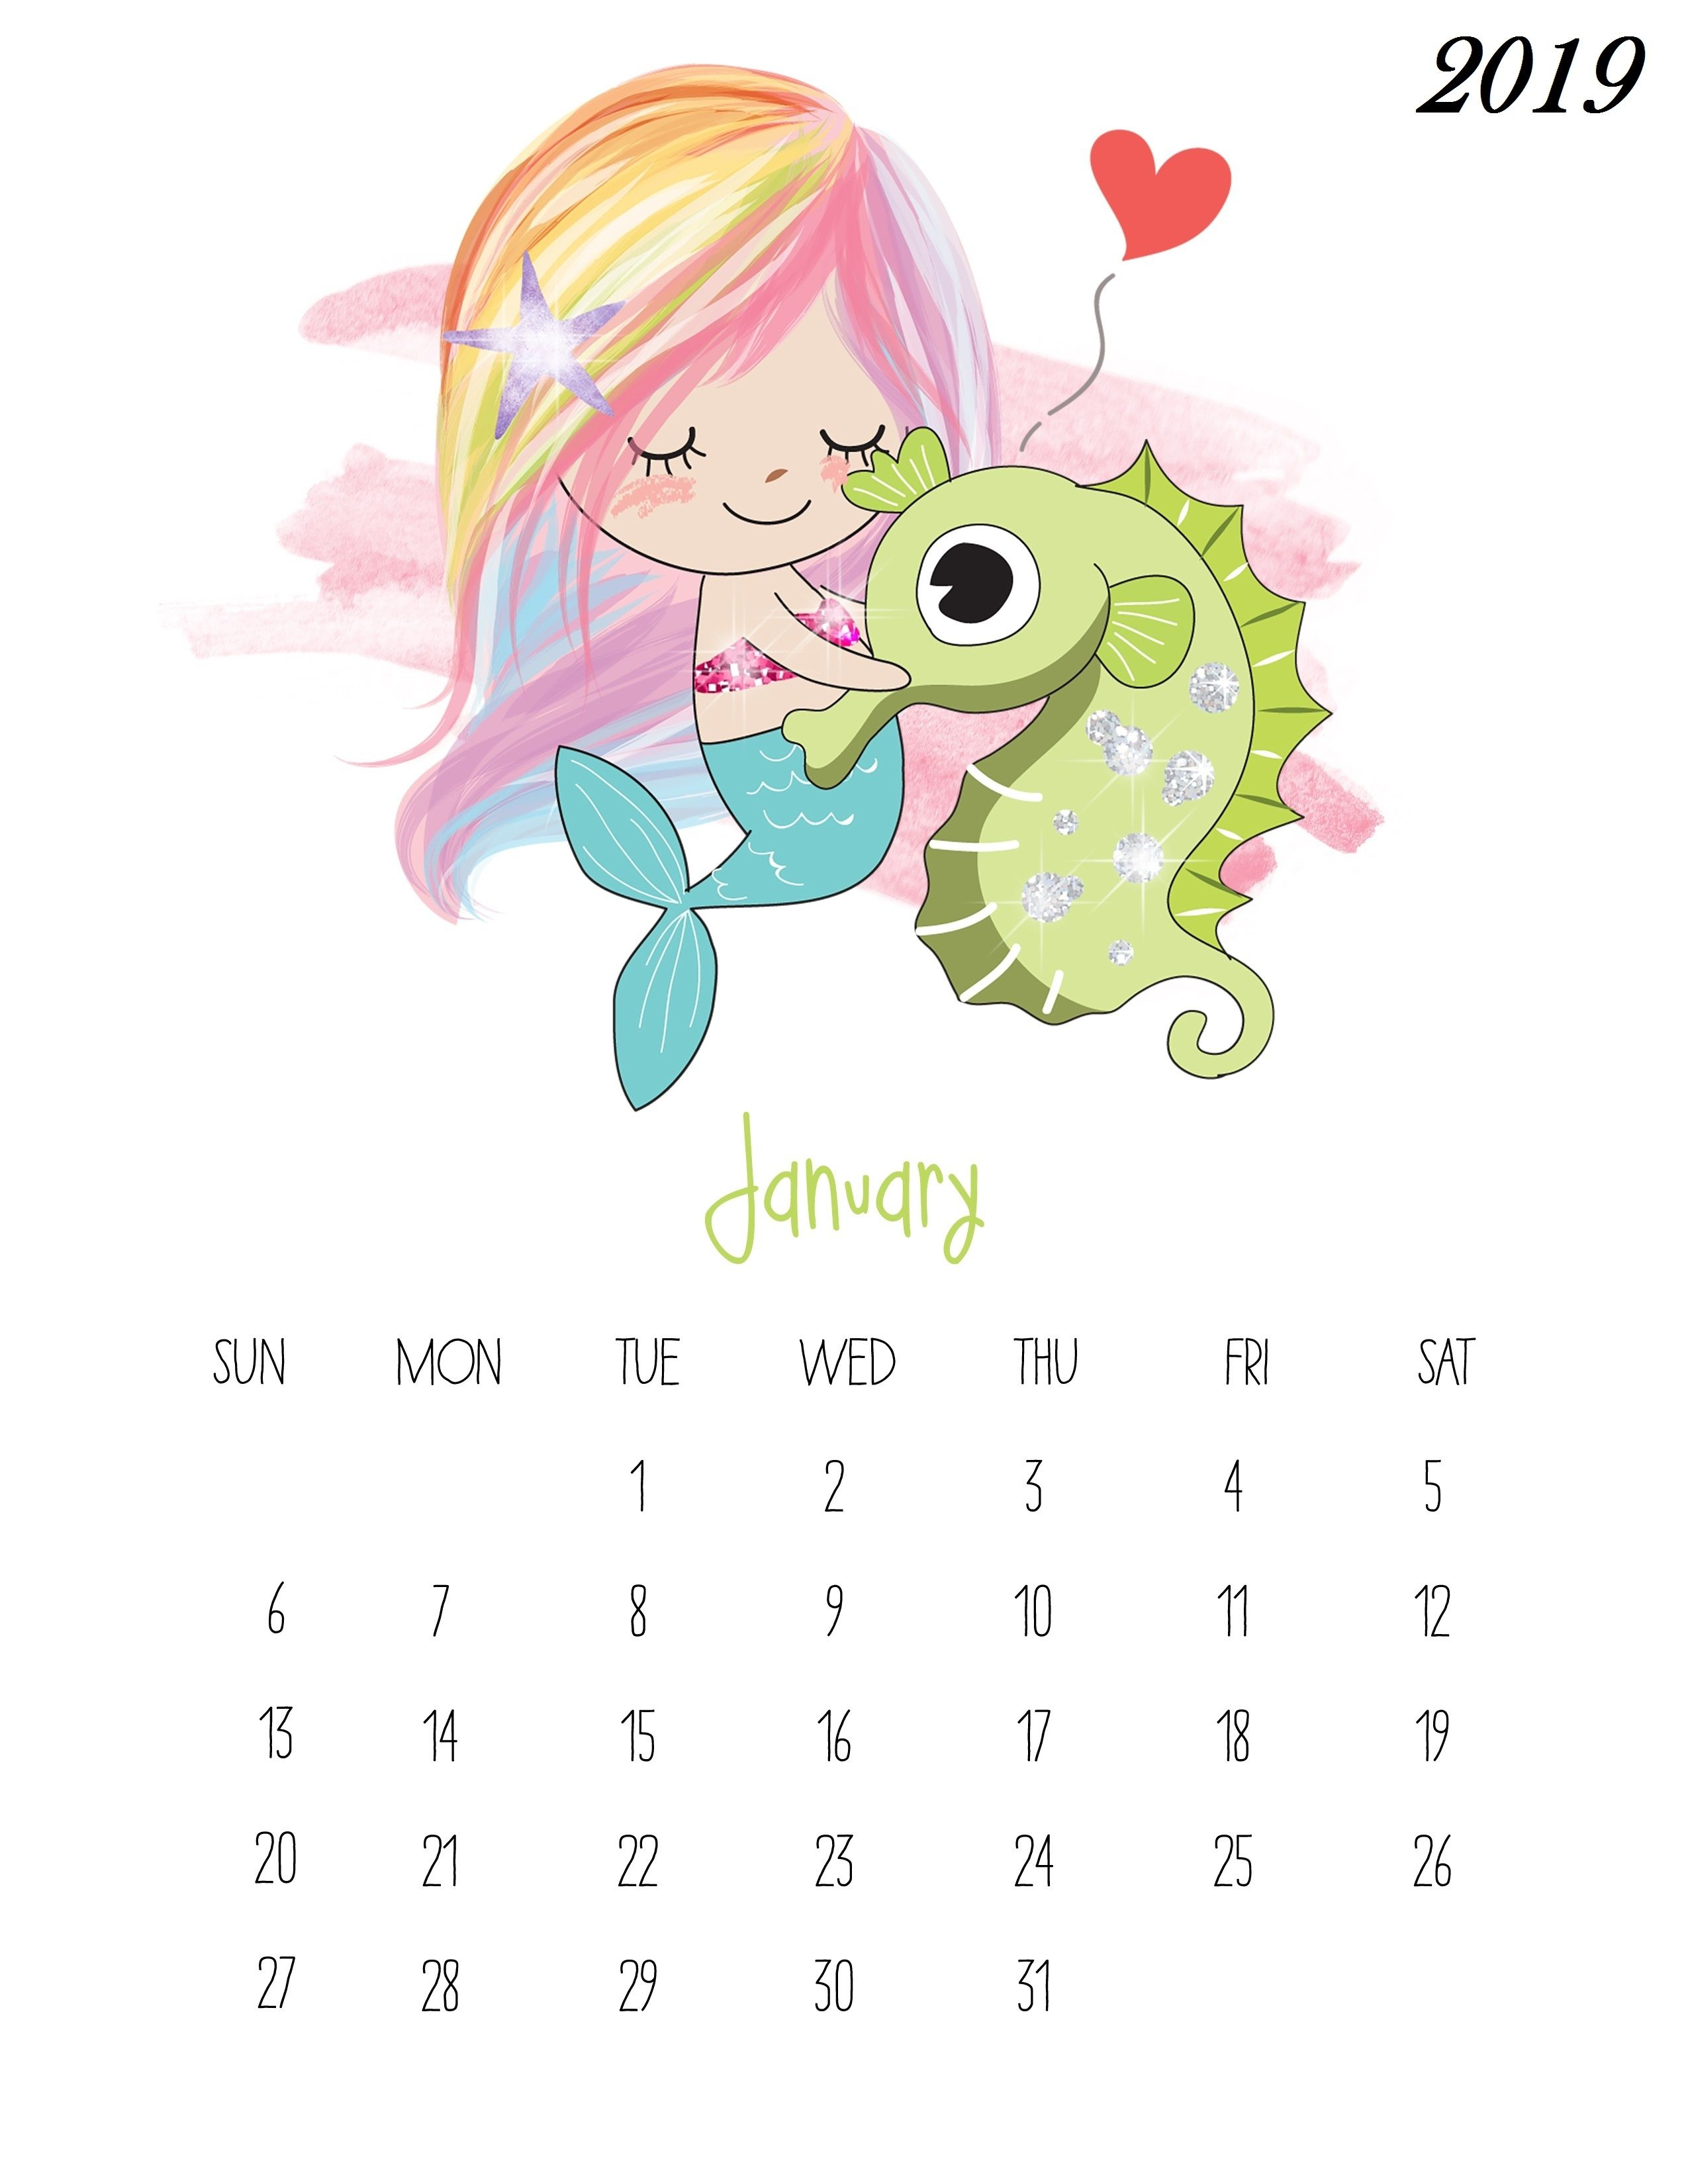 Free Printable 2019 Kids Calendarjanuary 2019 Iphone Calendar